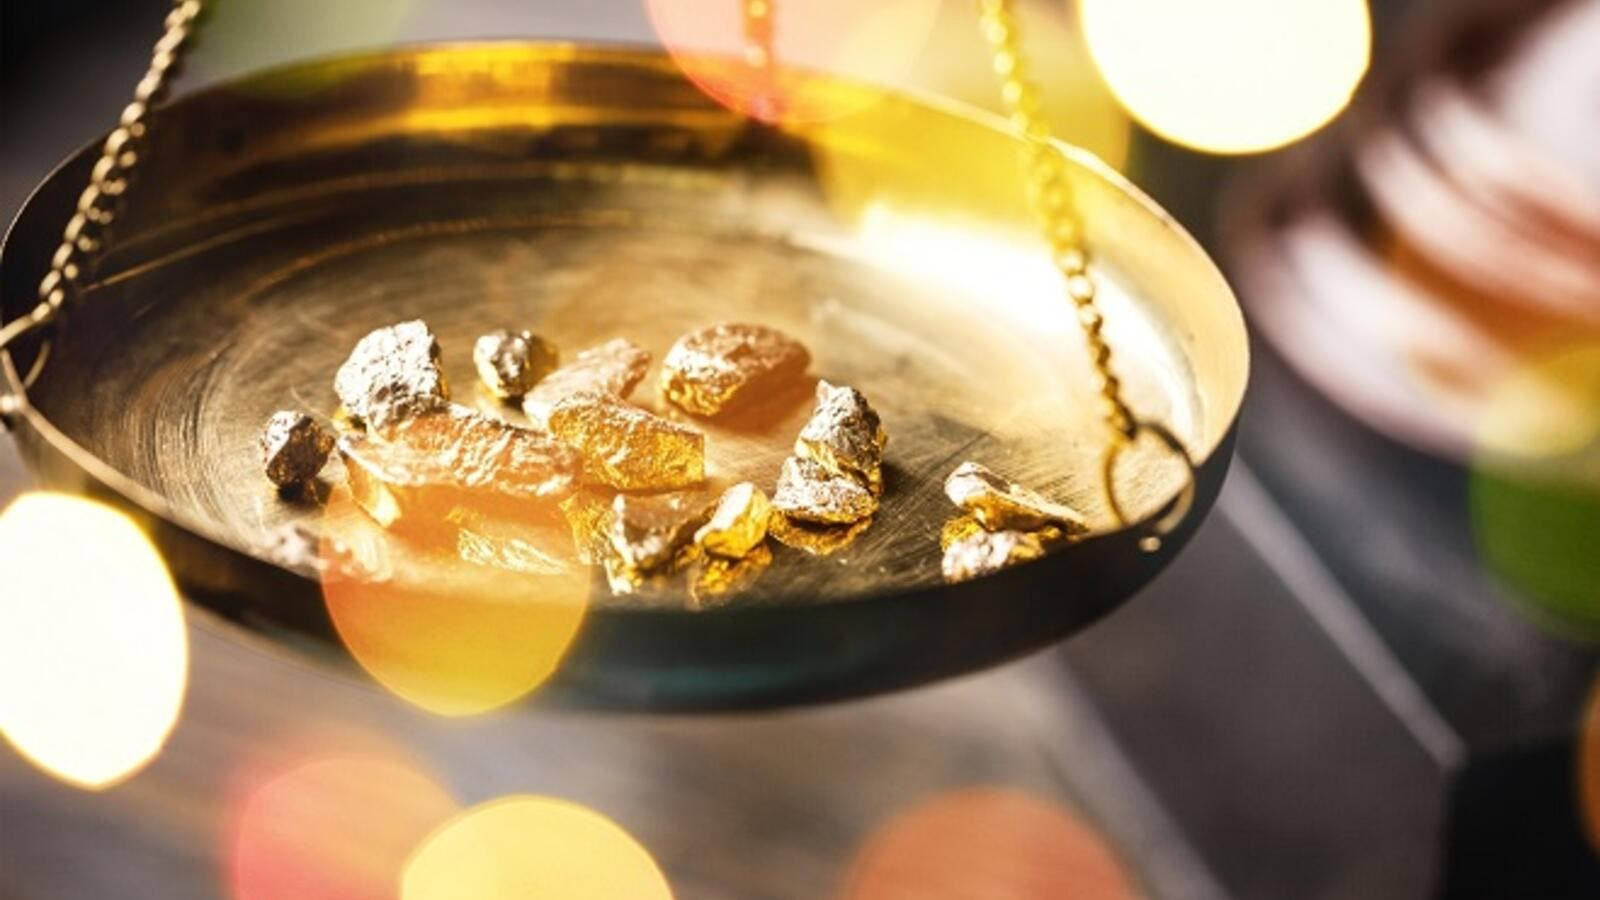 Gold prices edged higher on Wednesday, as investors looked ahead to the Federal Reserve's policy meeting, the last under the leadership of Janet Yellen. (Shutterstock)